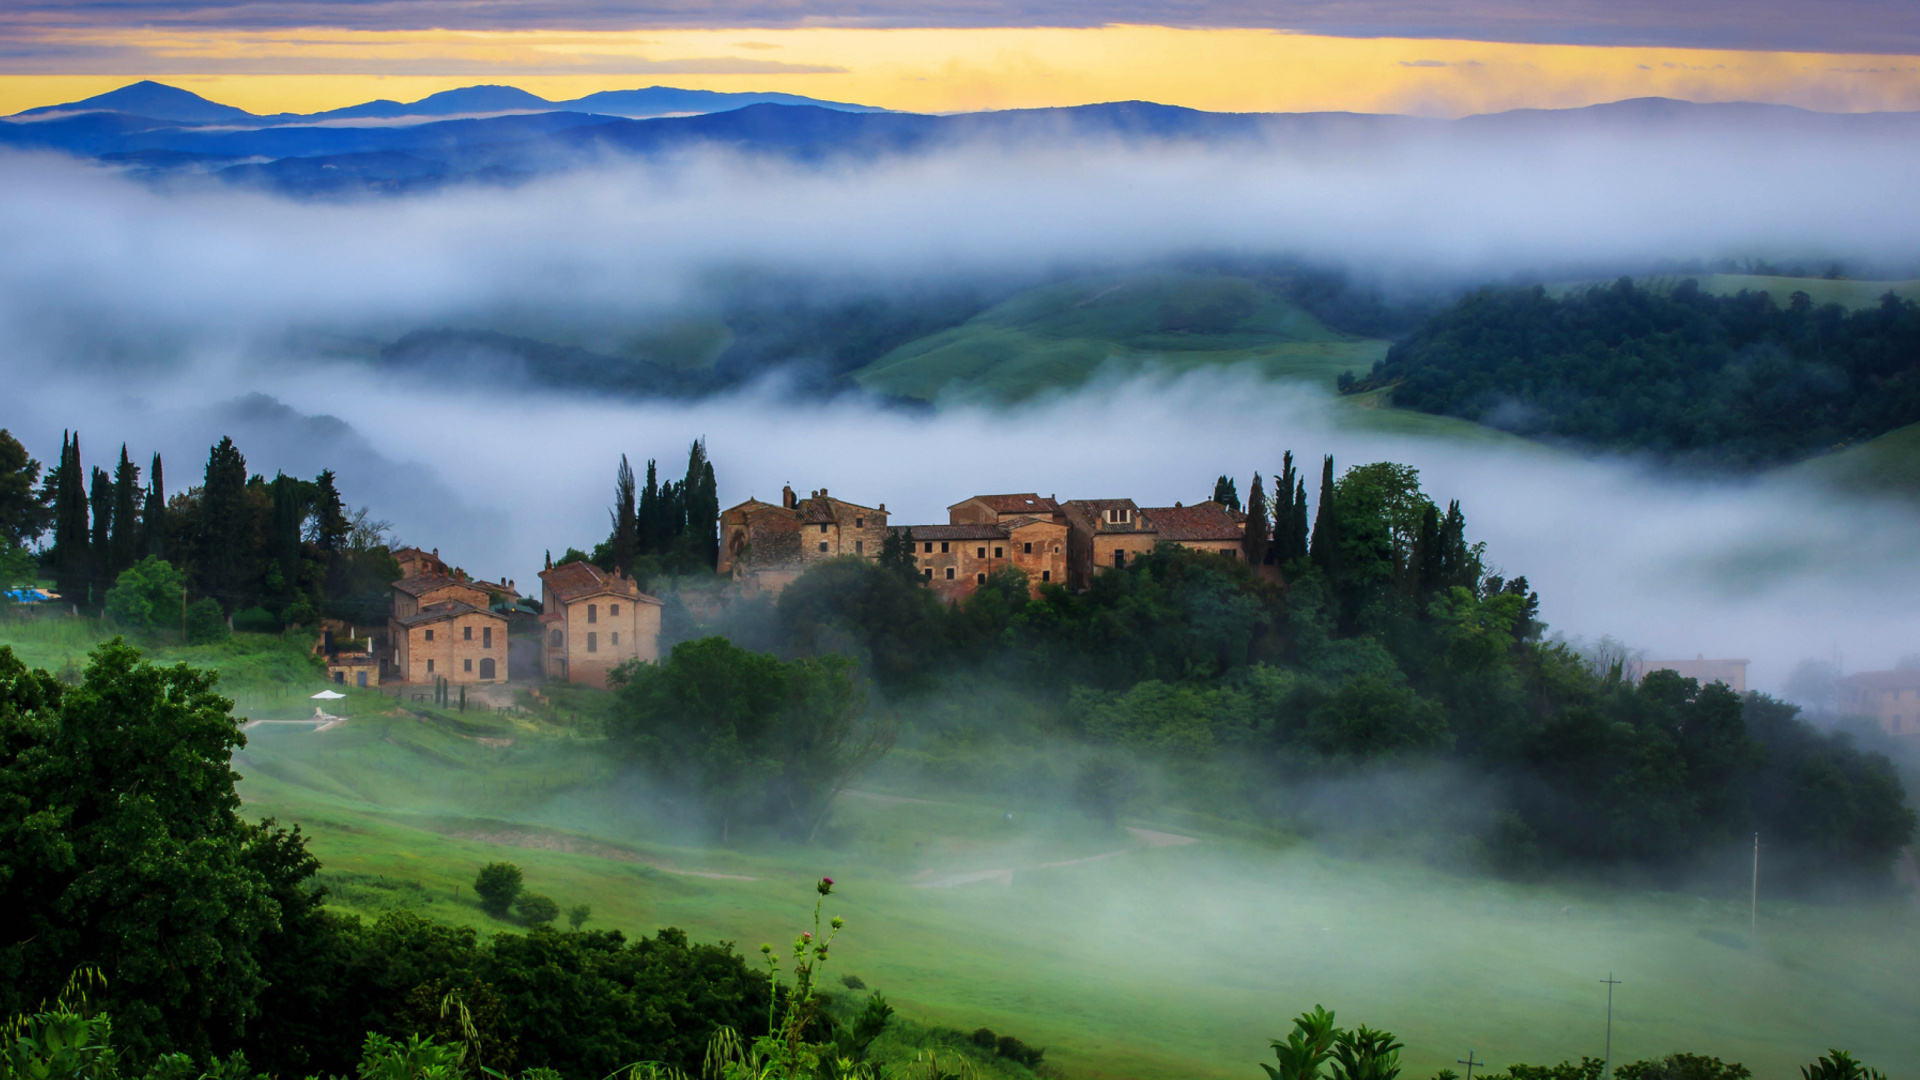 free 1920X1080 Tuscany Italy 1920x1080 wallpaper screensaver preview 1920x1080